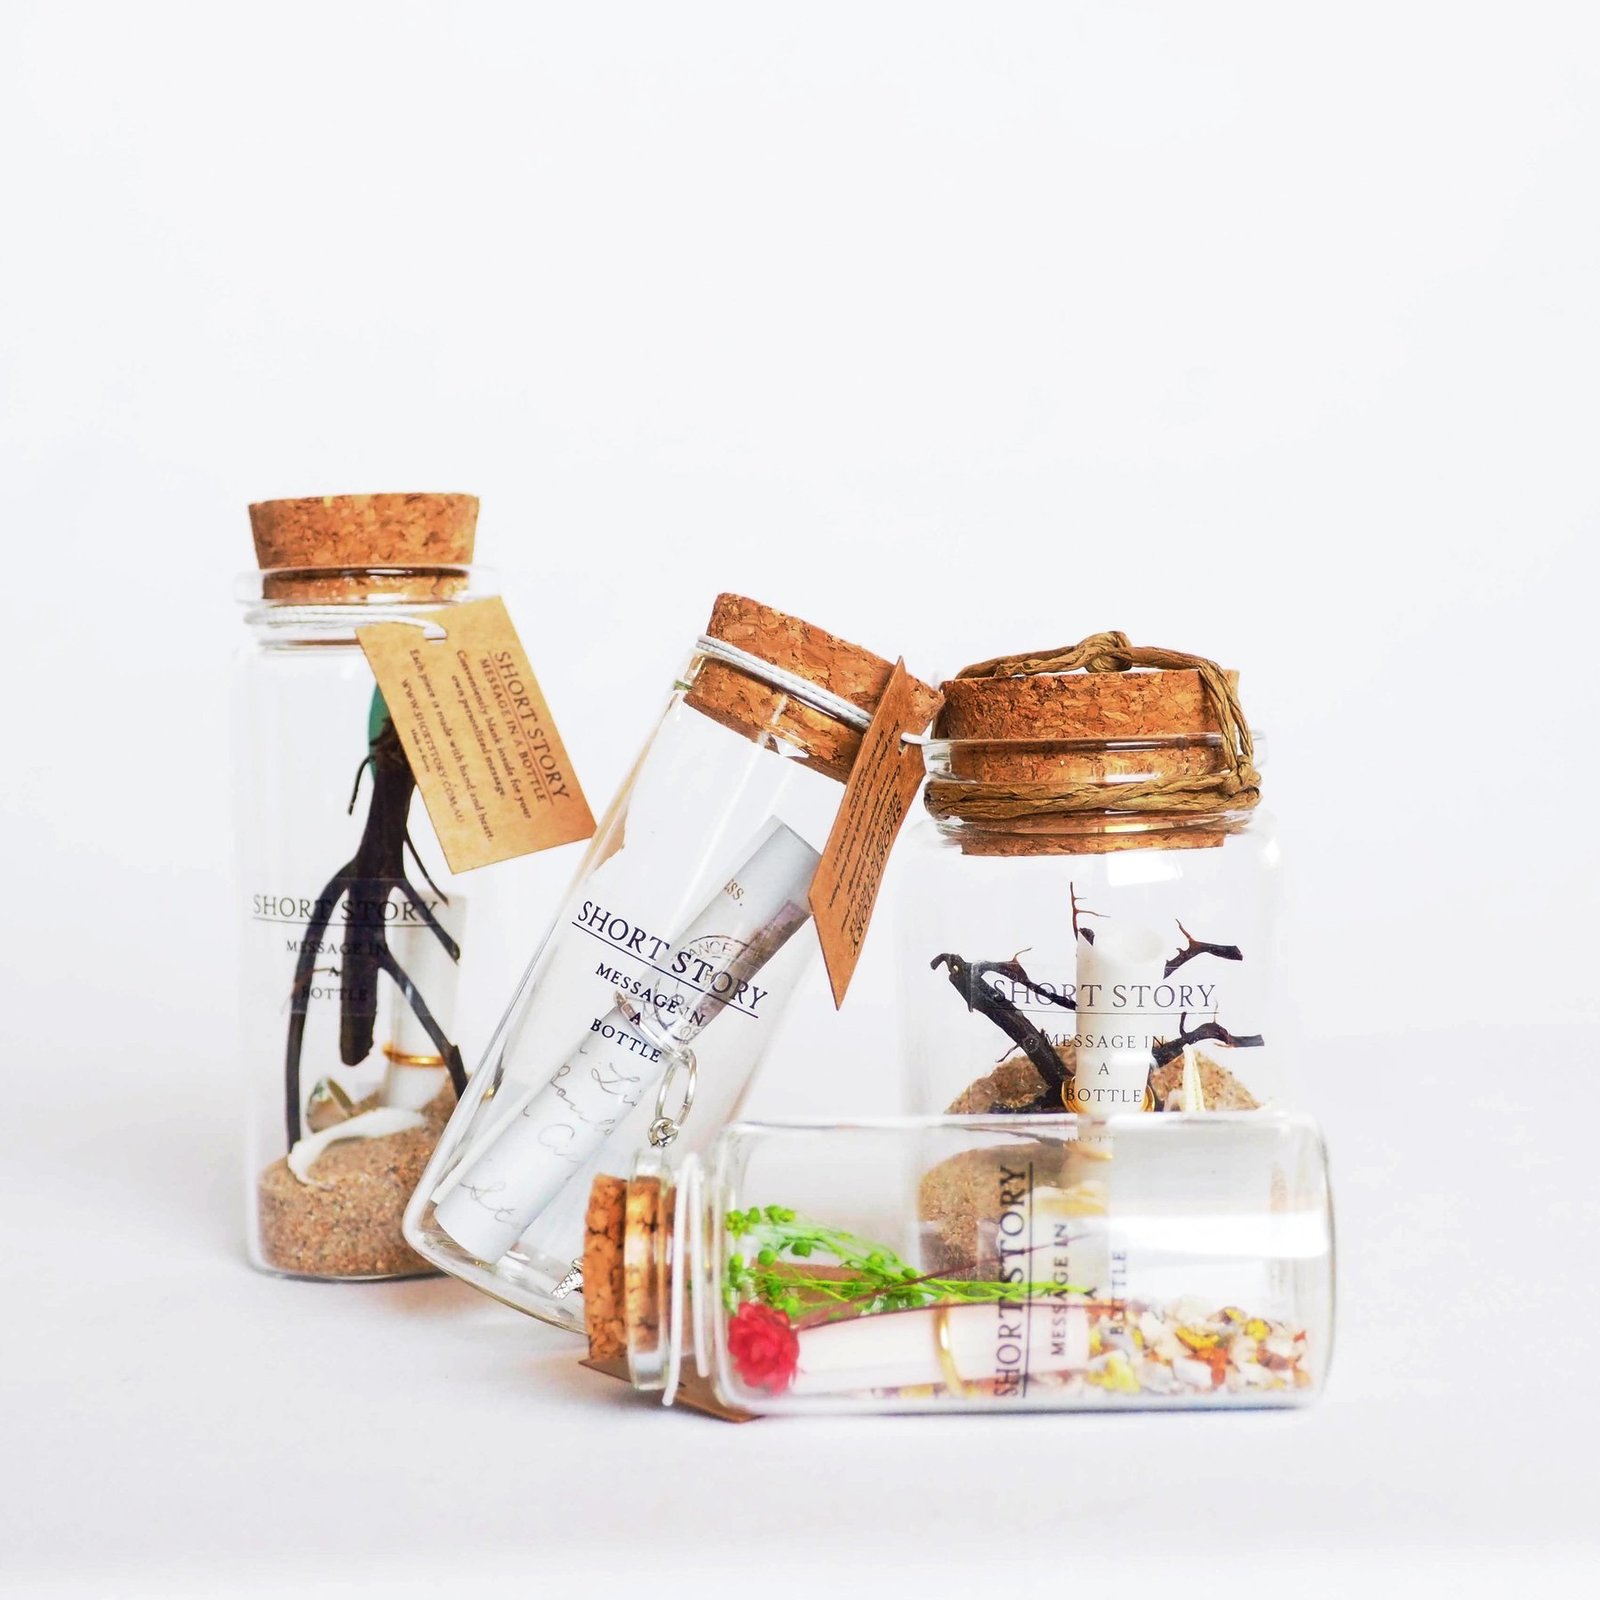 Short Story: Let's Go Fishing - Message in a Bottle image